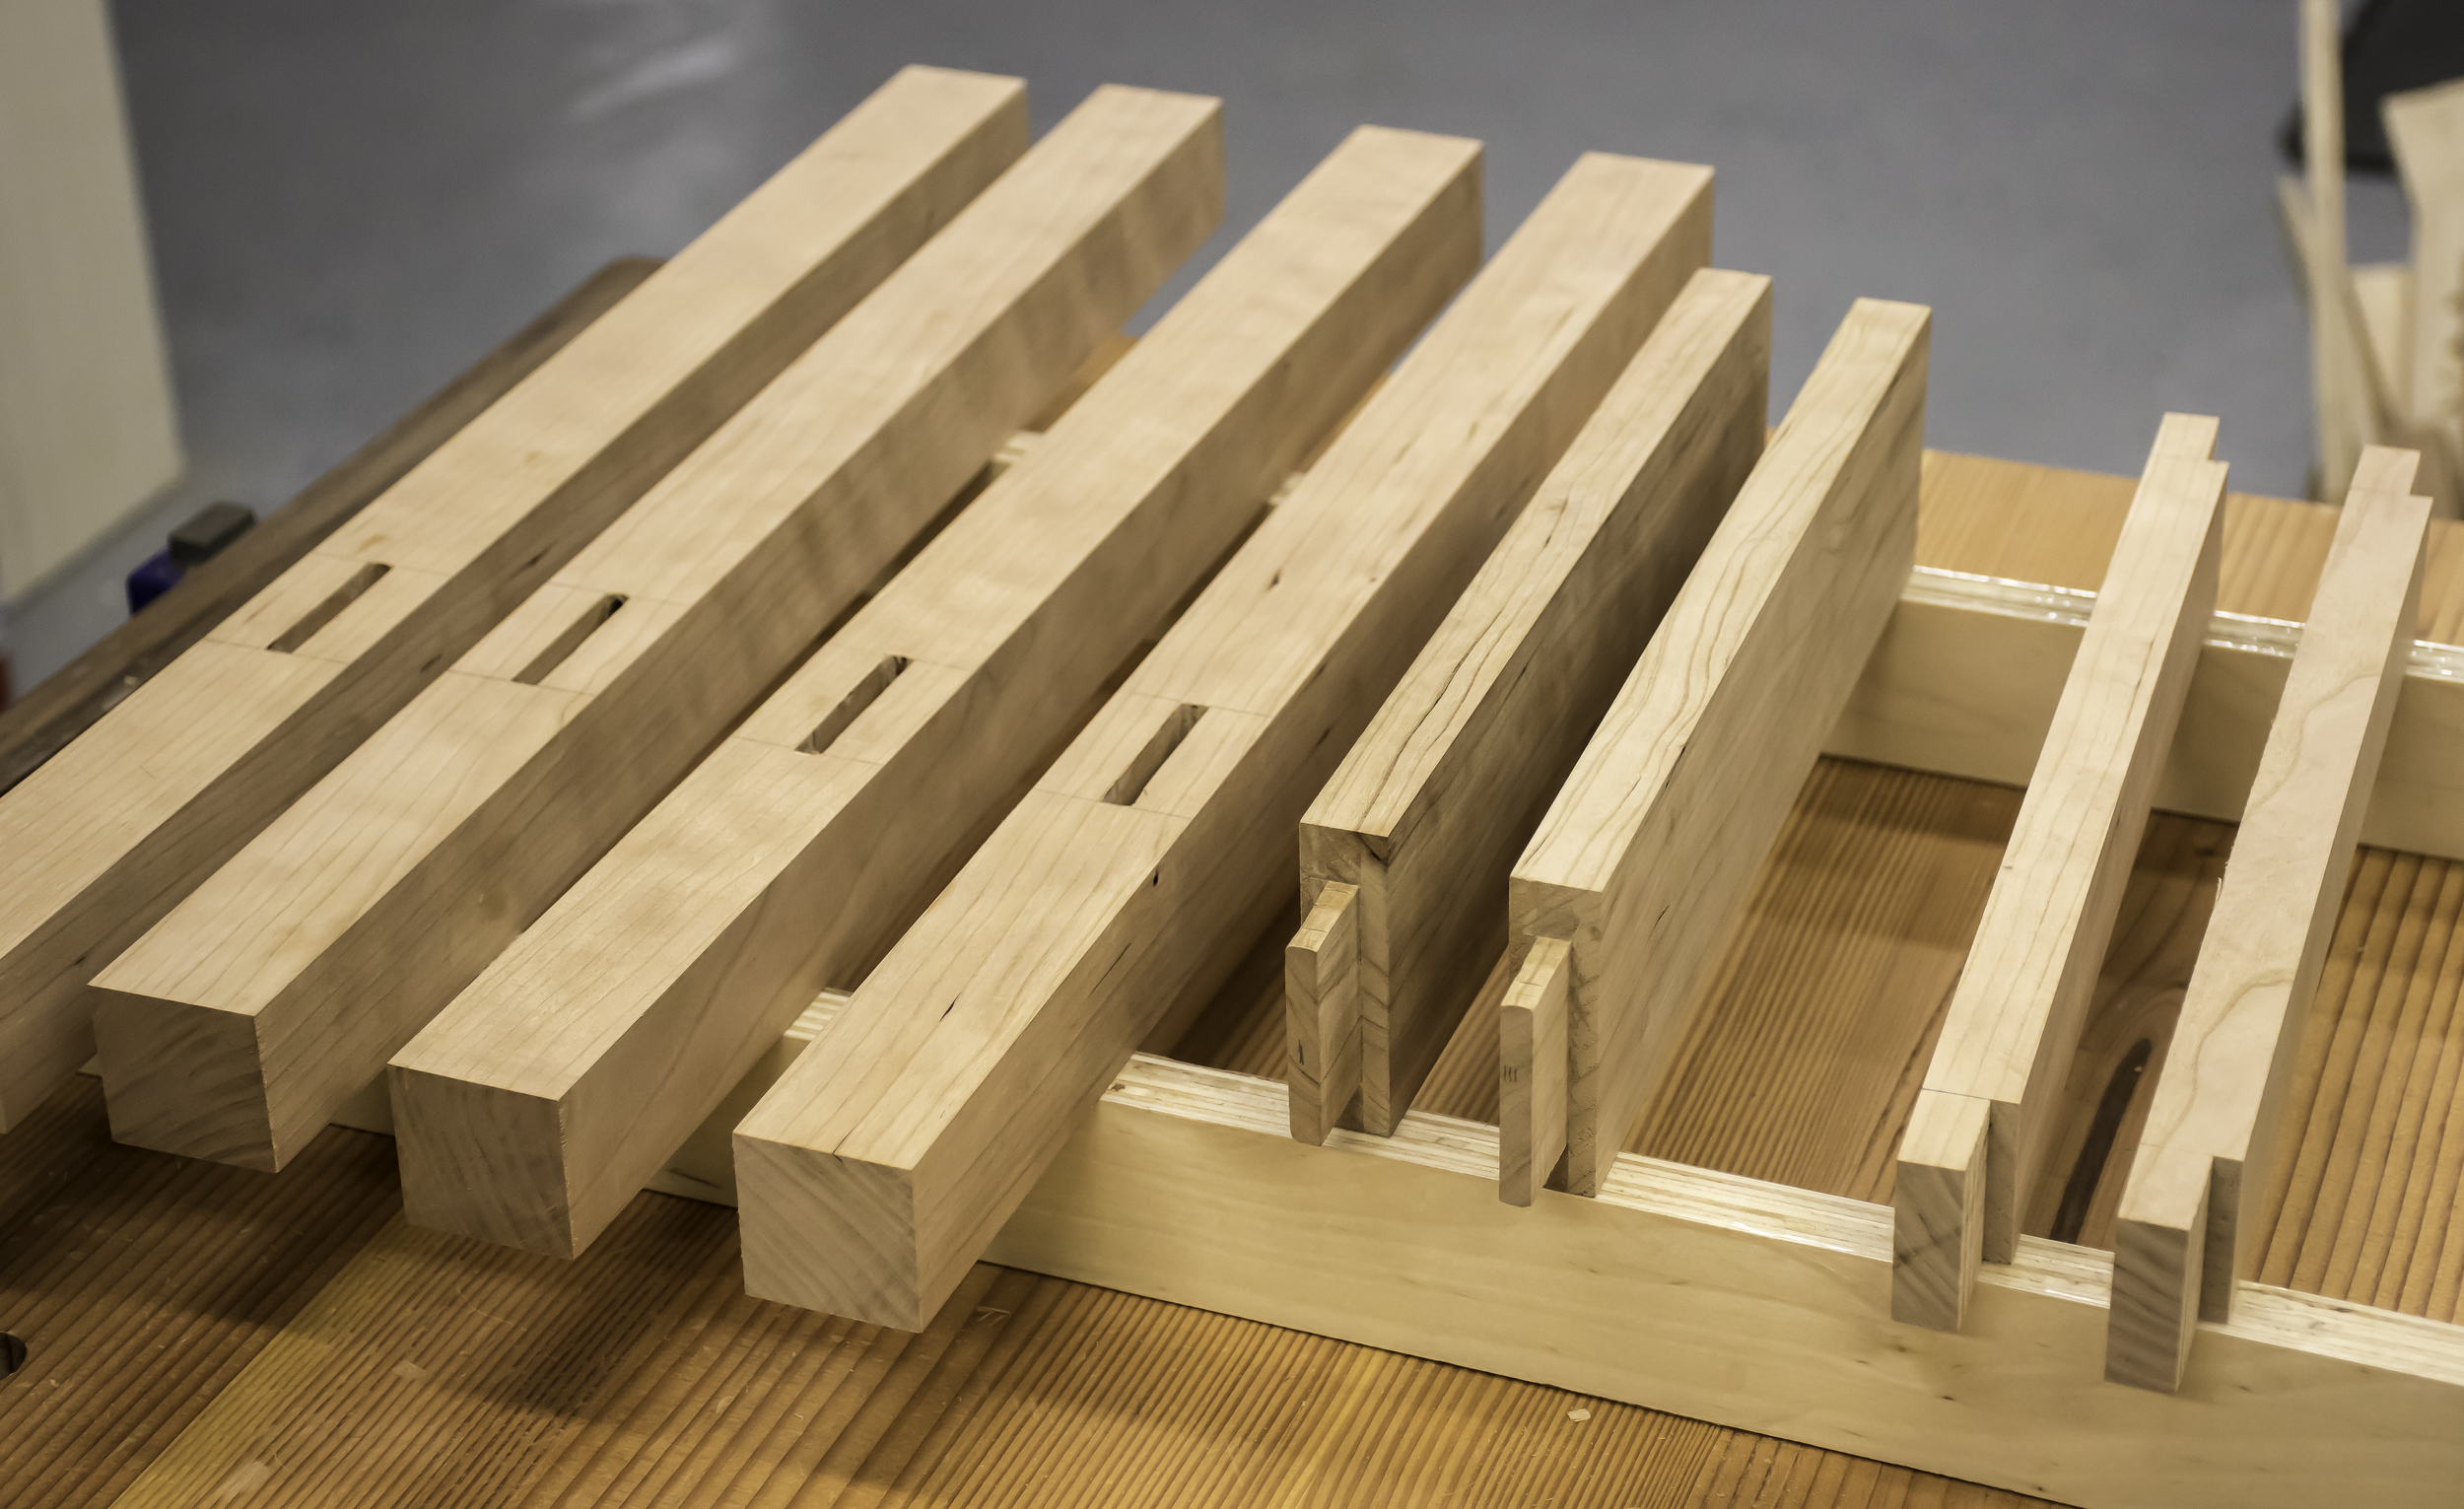 Mortise-and-tenon joints are done.  Notice that the shoulders are cut on the upper stretchers, as well.